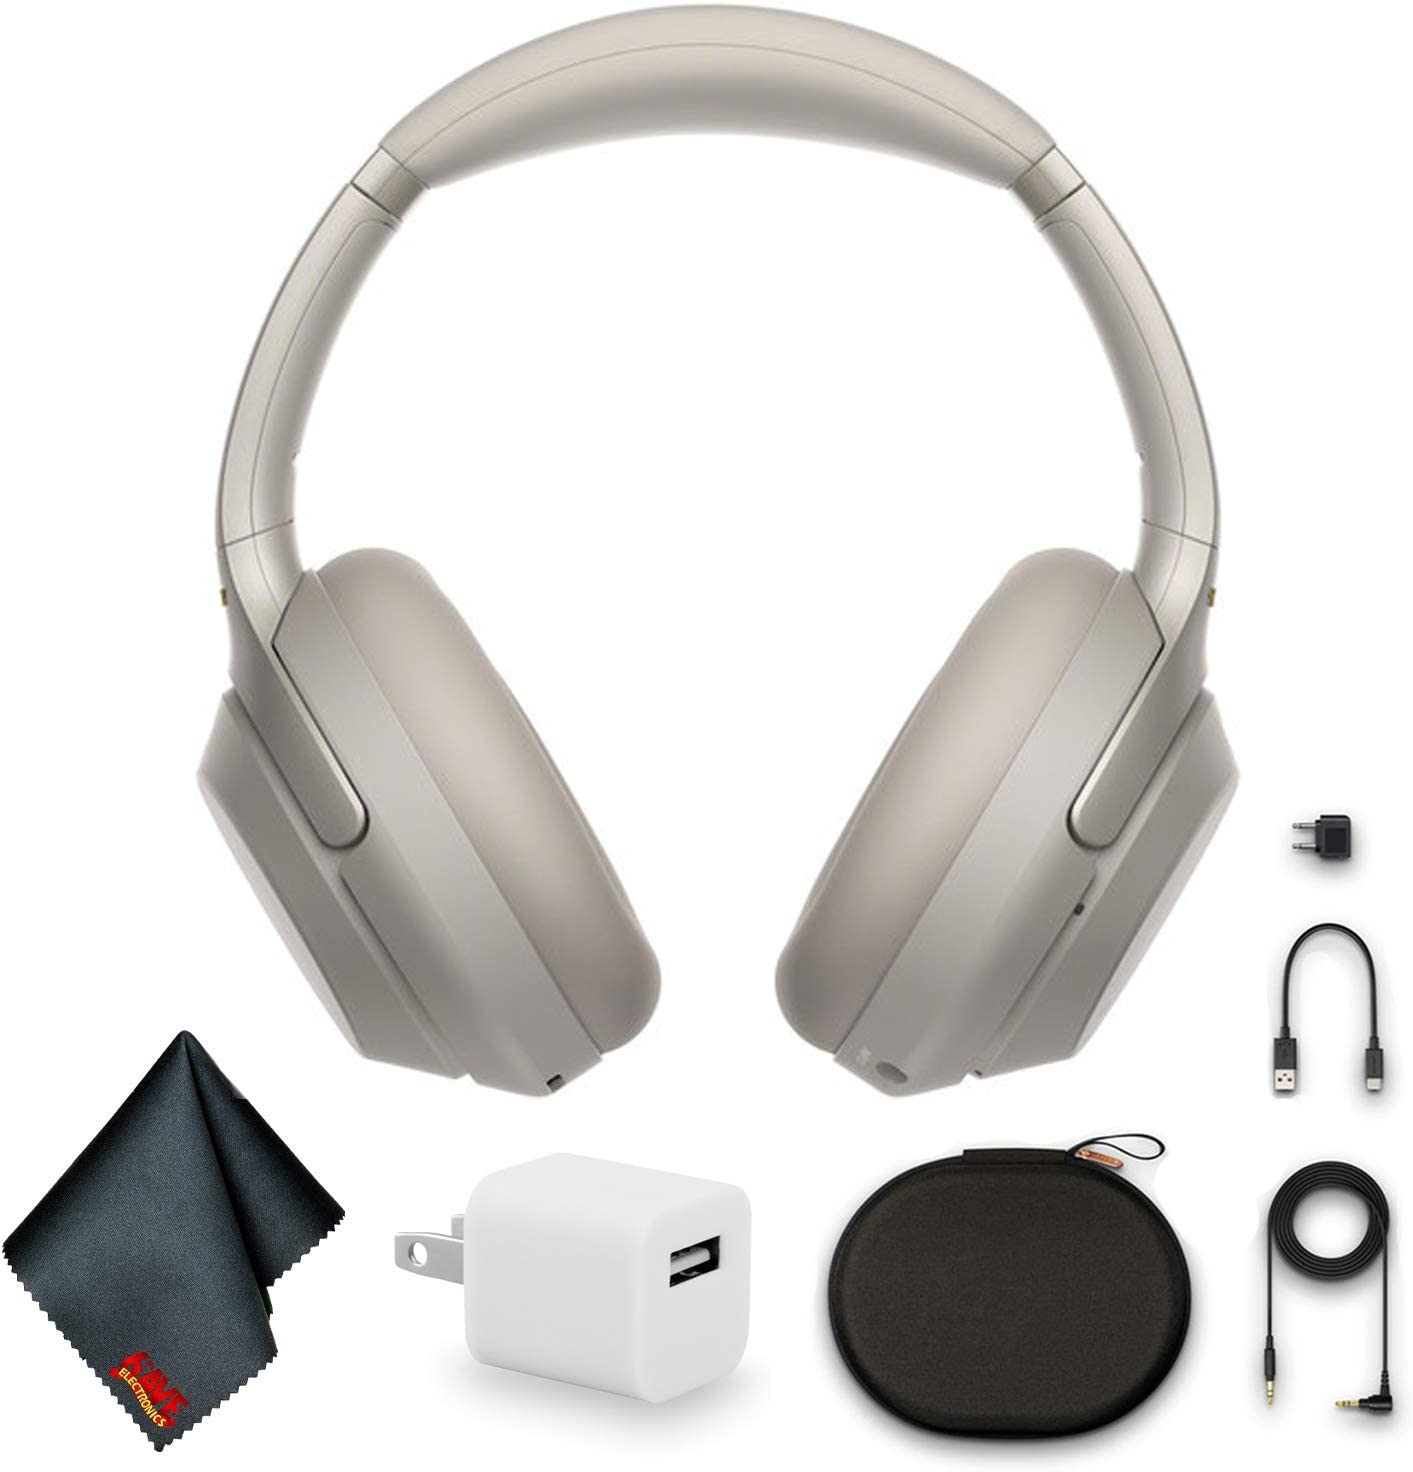 Sony WH-1000XM3 Wireless Noise-Canceling Over-Ear Headphones (Silver) Bundle with USB Adapter and More